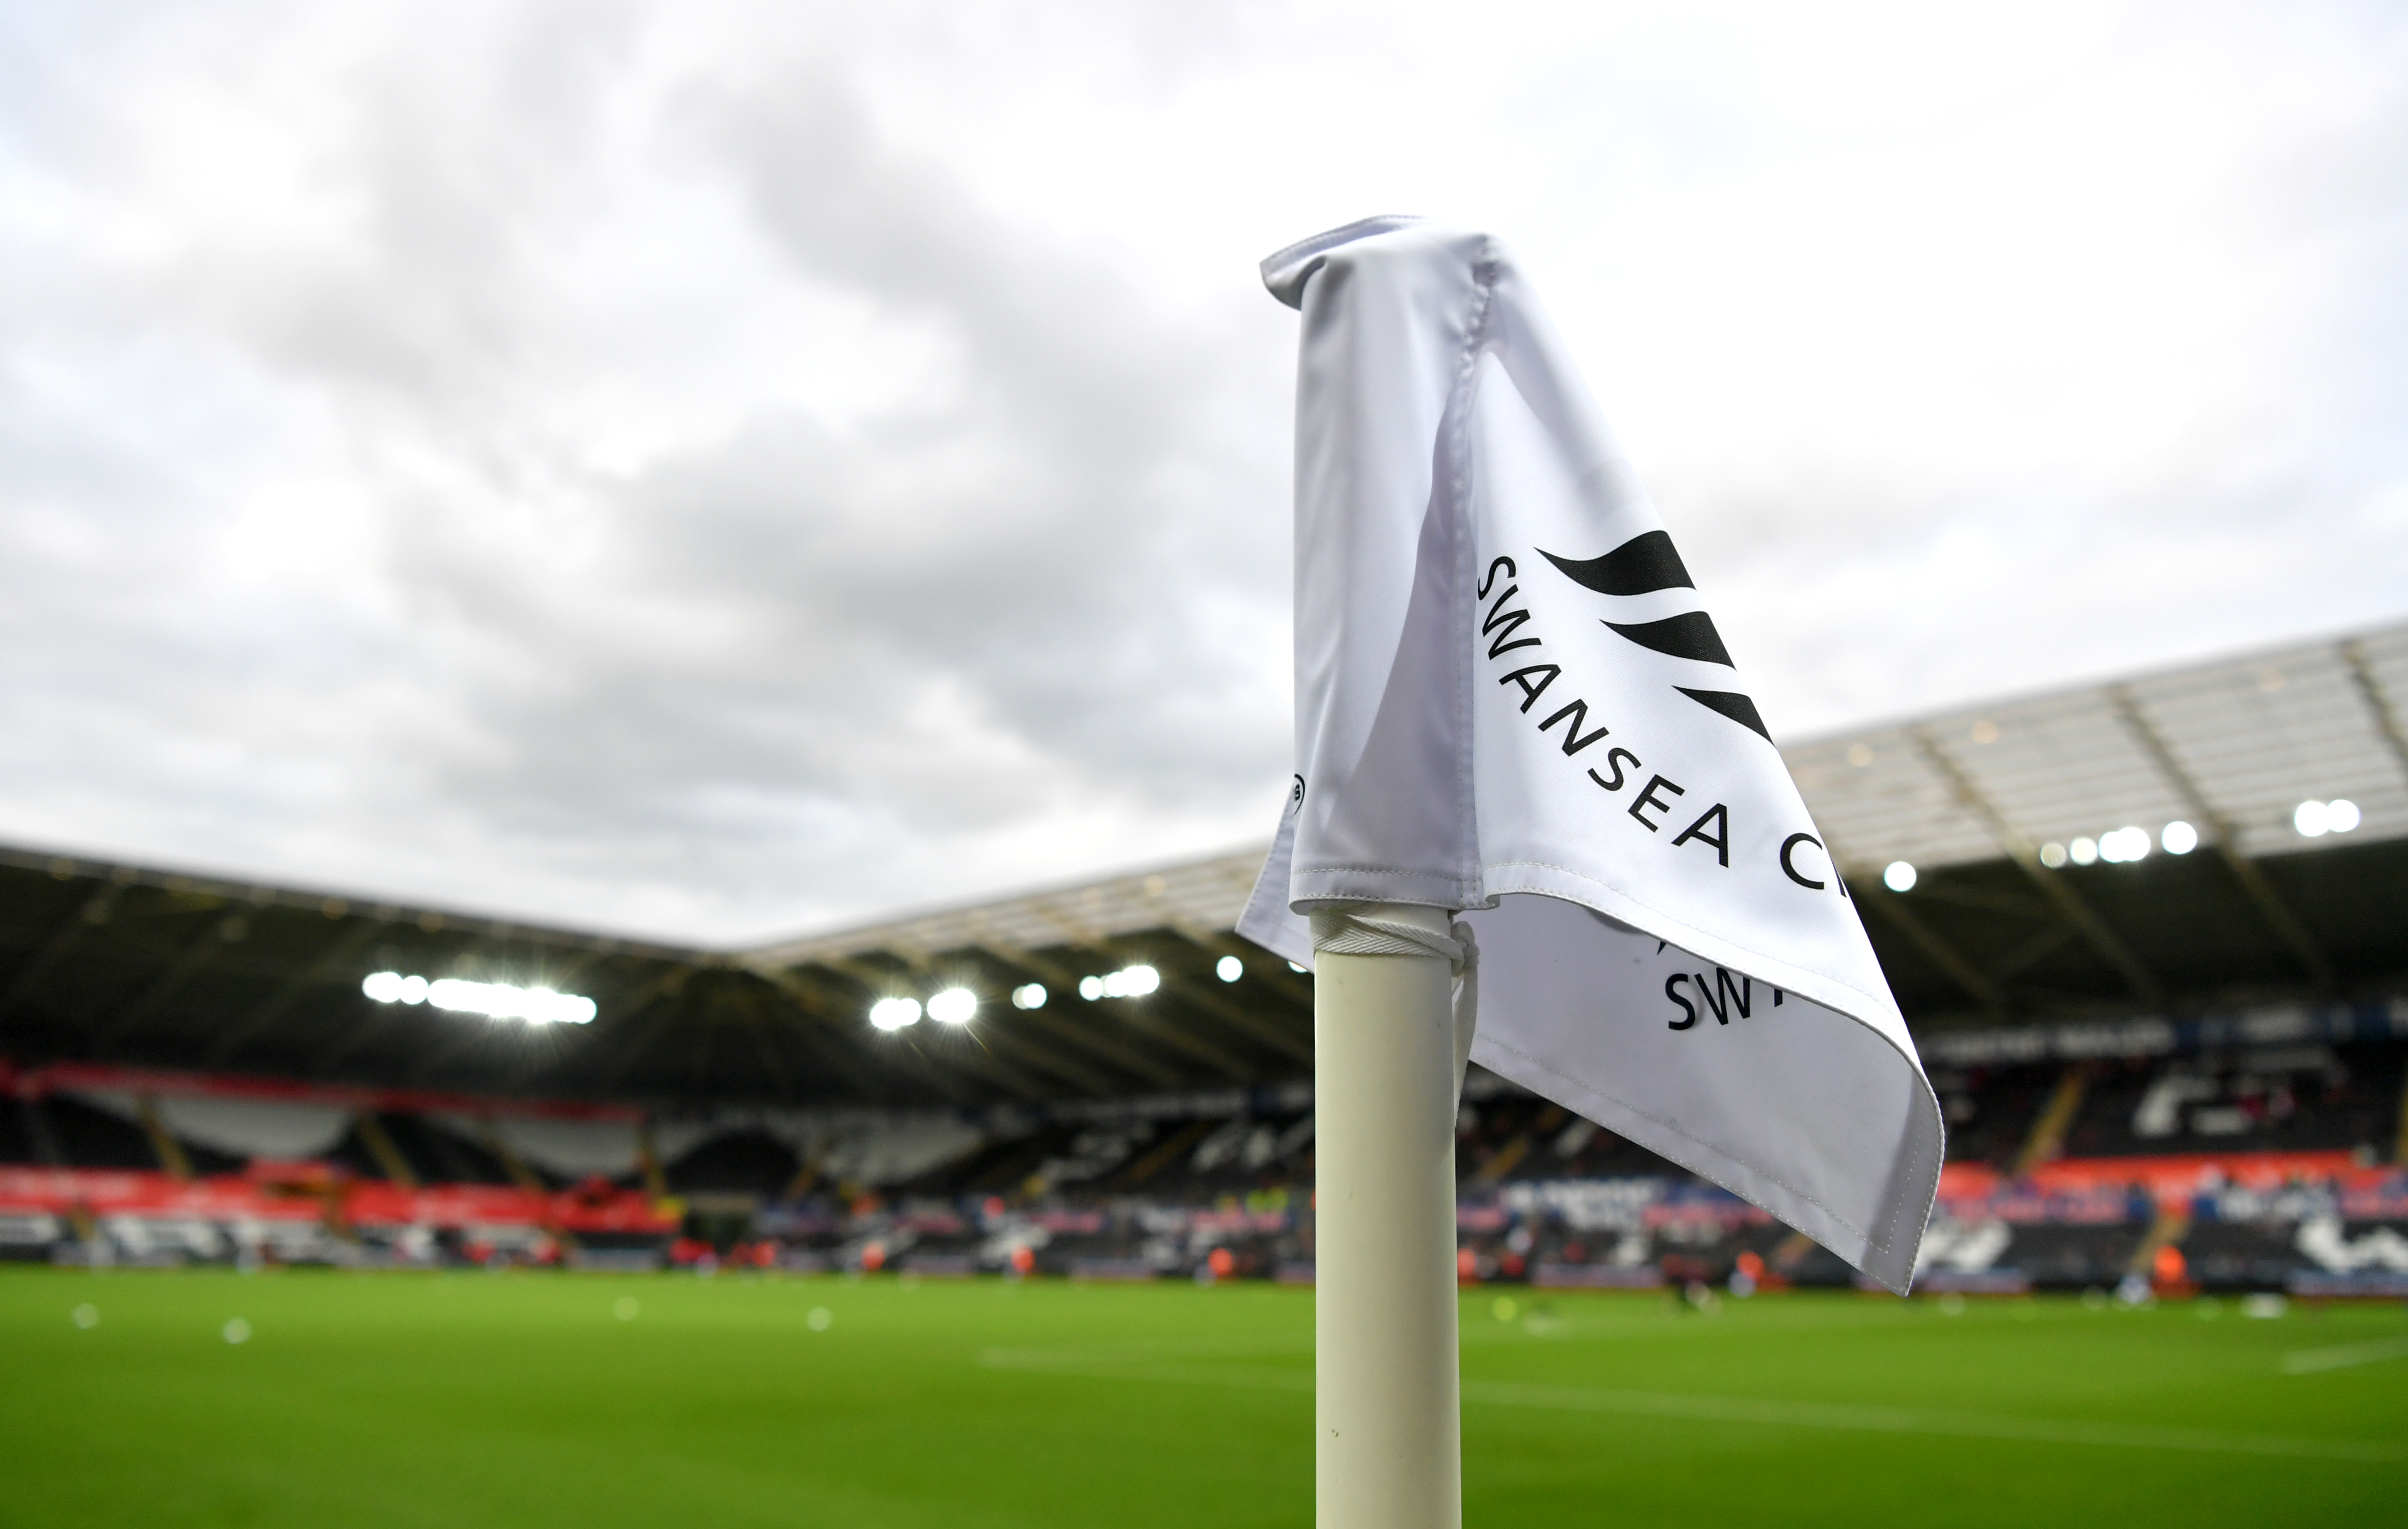 Swansea City v Crystal Palace - Carabao Cup Second Round